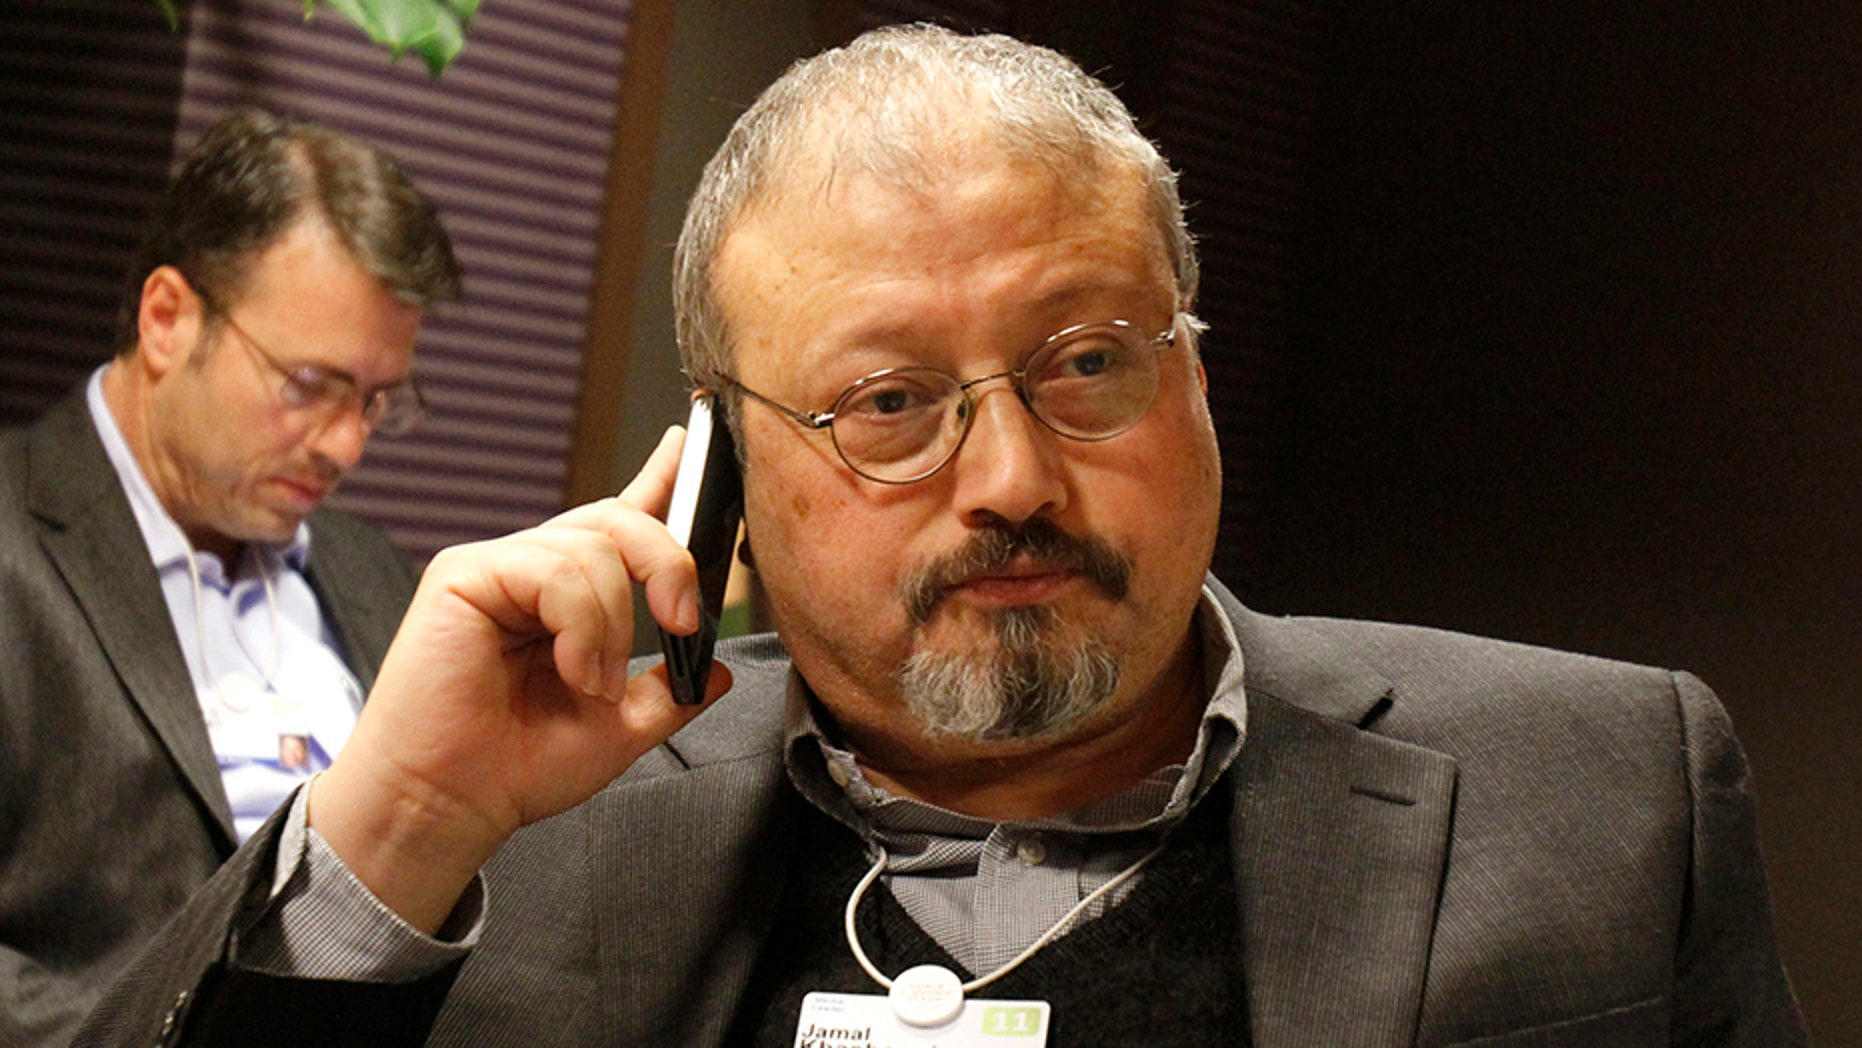 USA officials voice concern over missing Saudi journalist